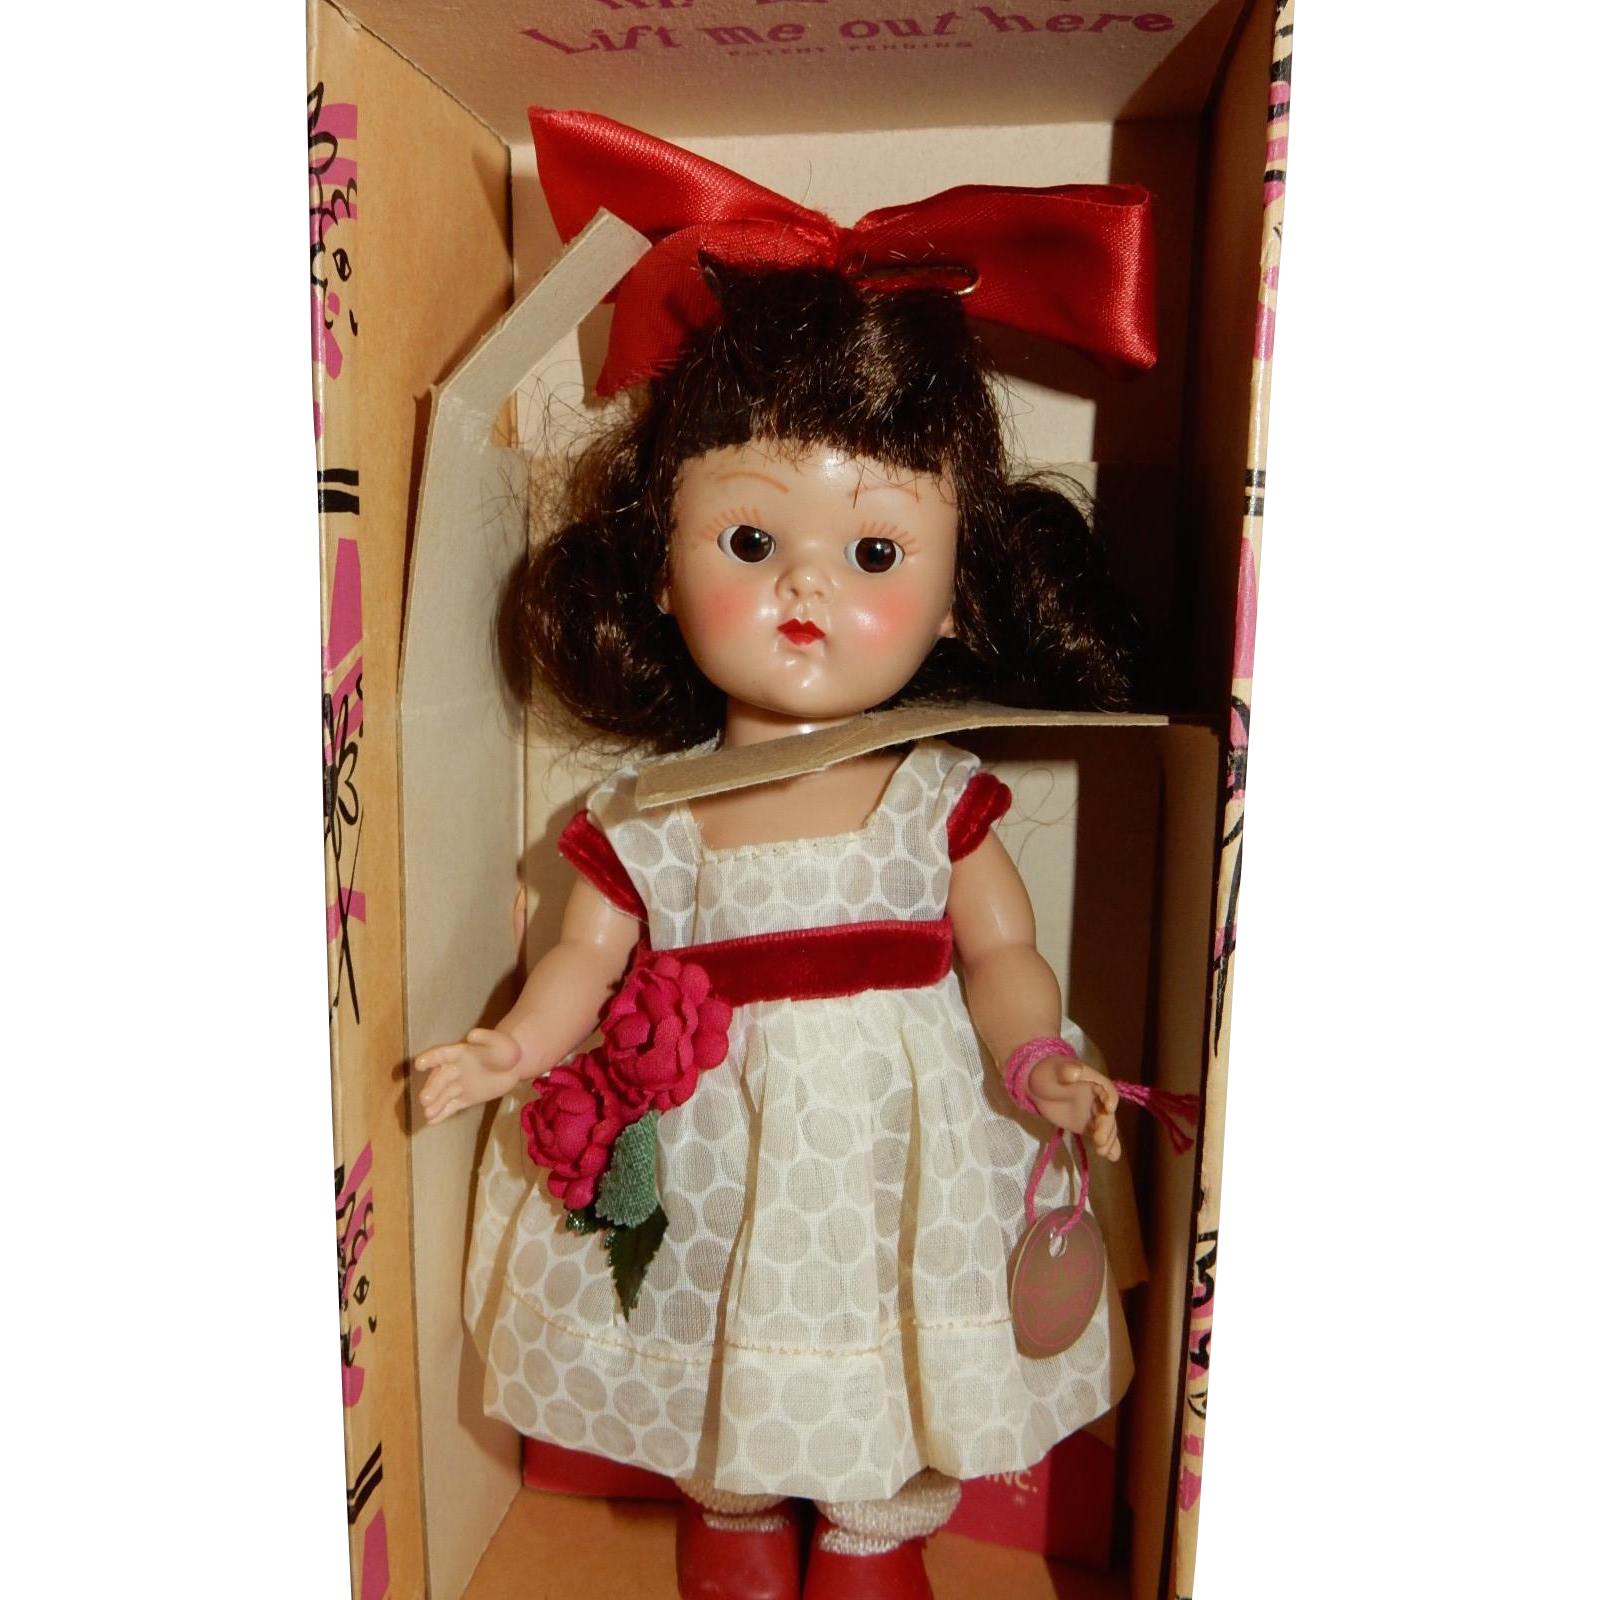 CUTE Mint in Correct Box Box 195 Vogue Ginny Doll #24 Kinder Crowd